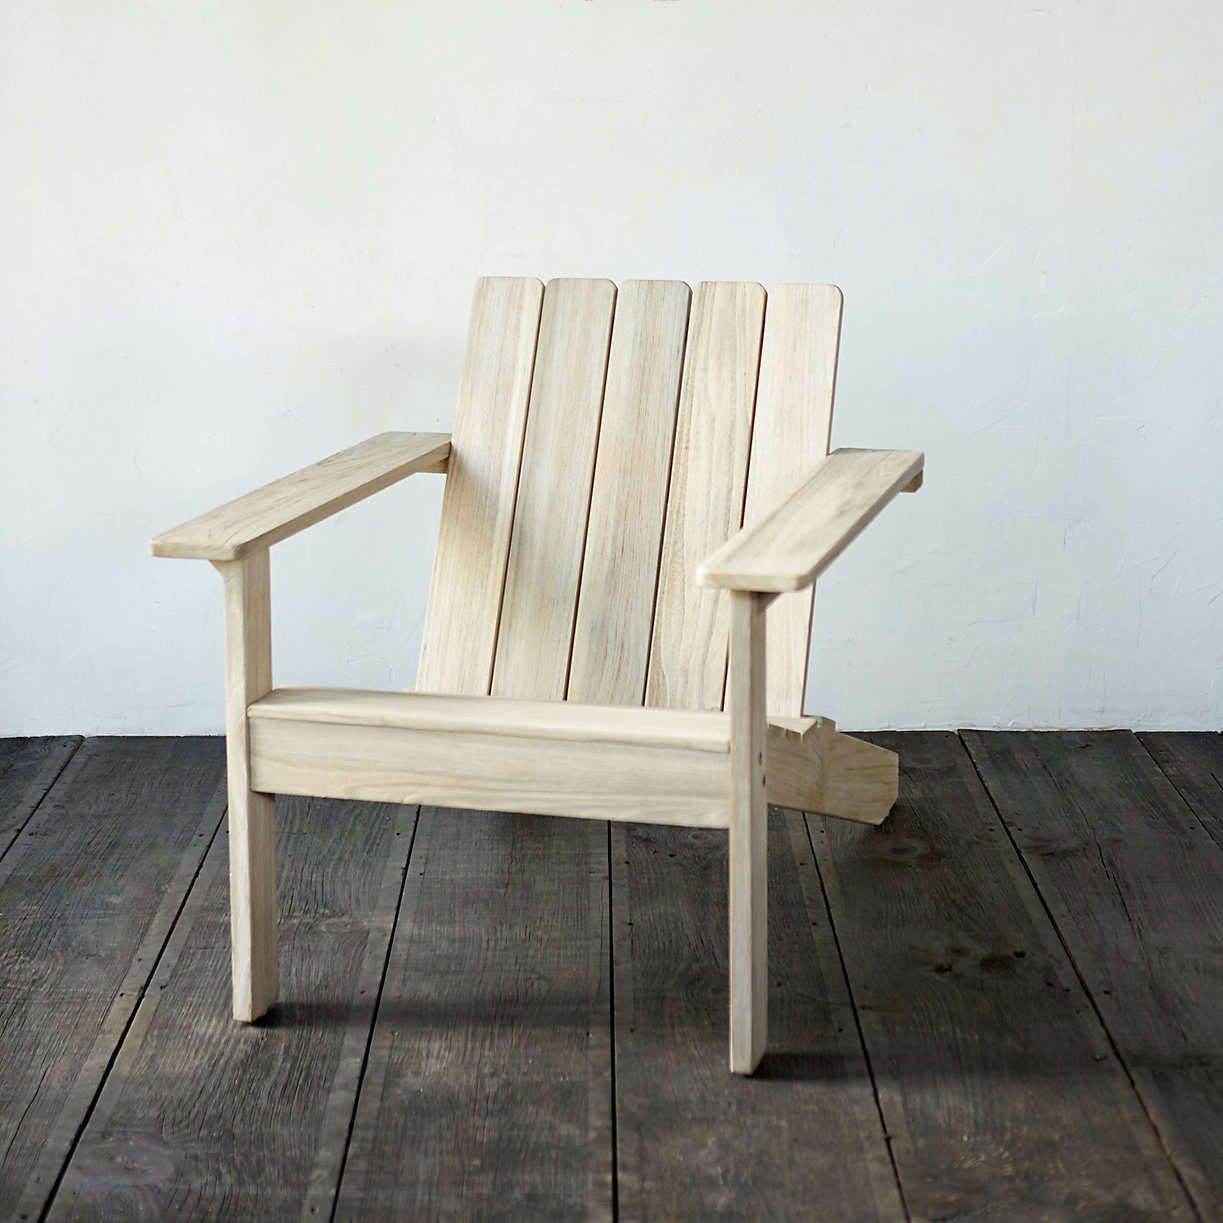 A Teak Adirondack Chair Pre Treated To Resist Wear From Sun And Rain Is $598